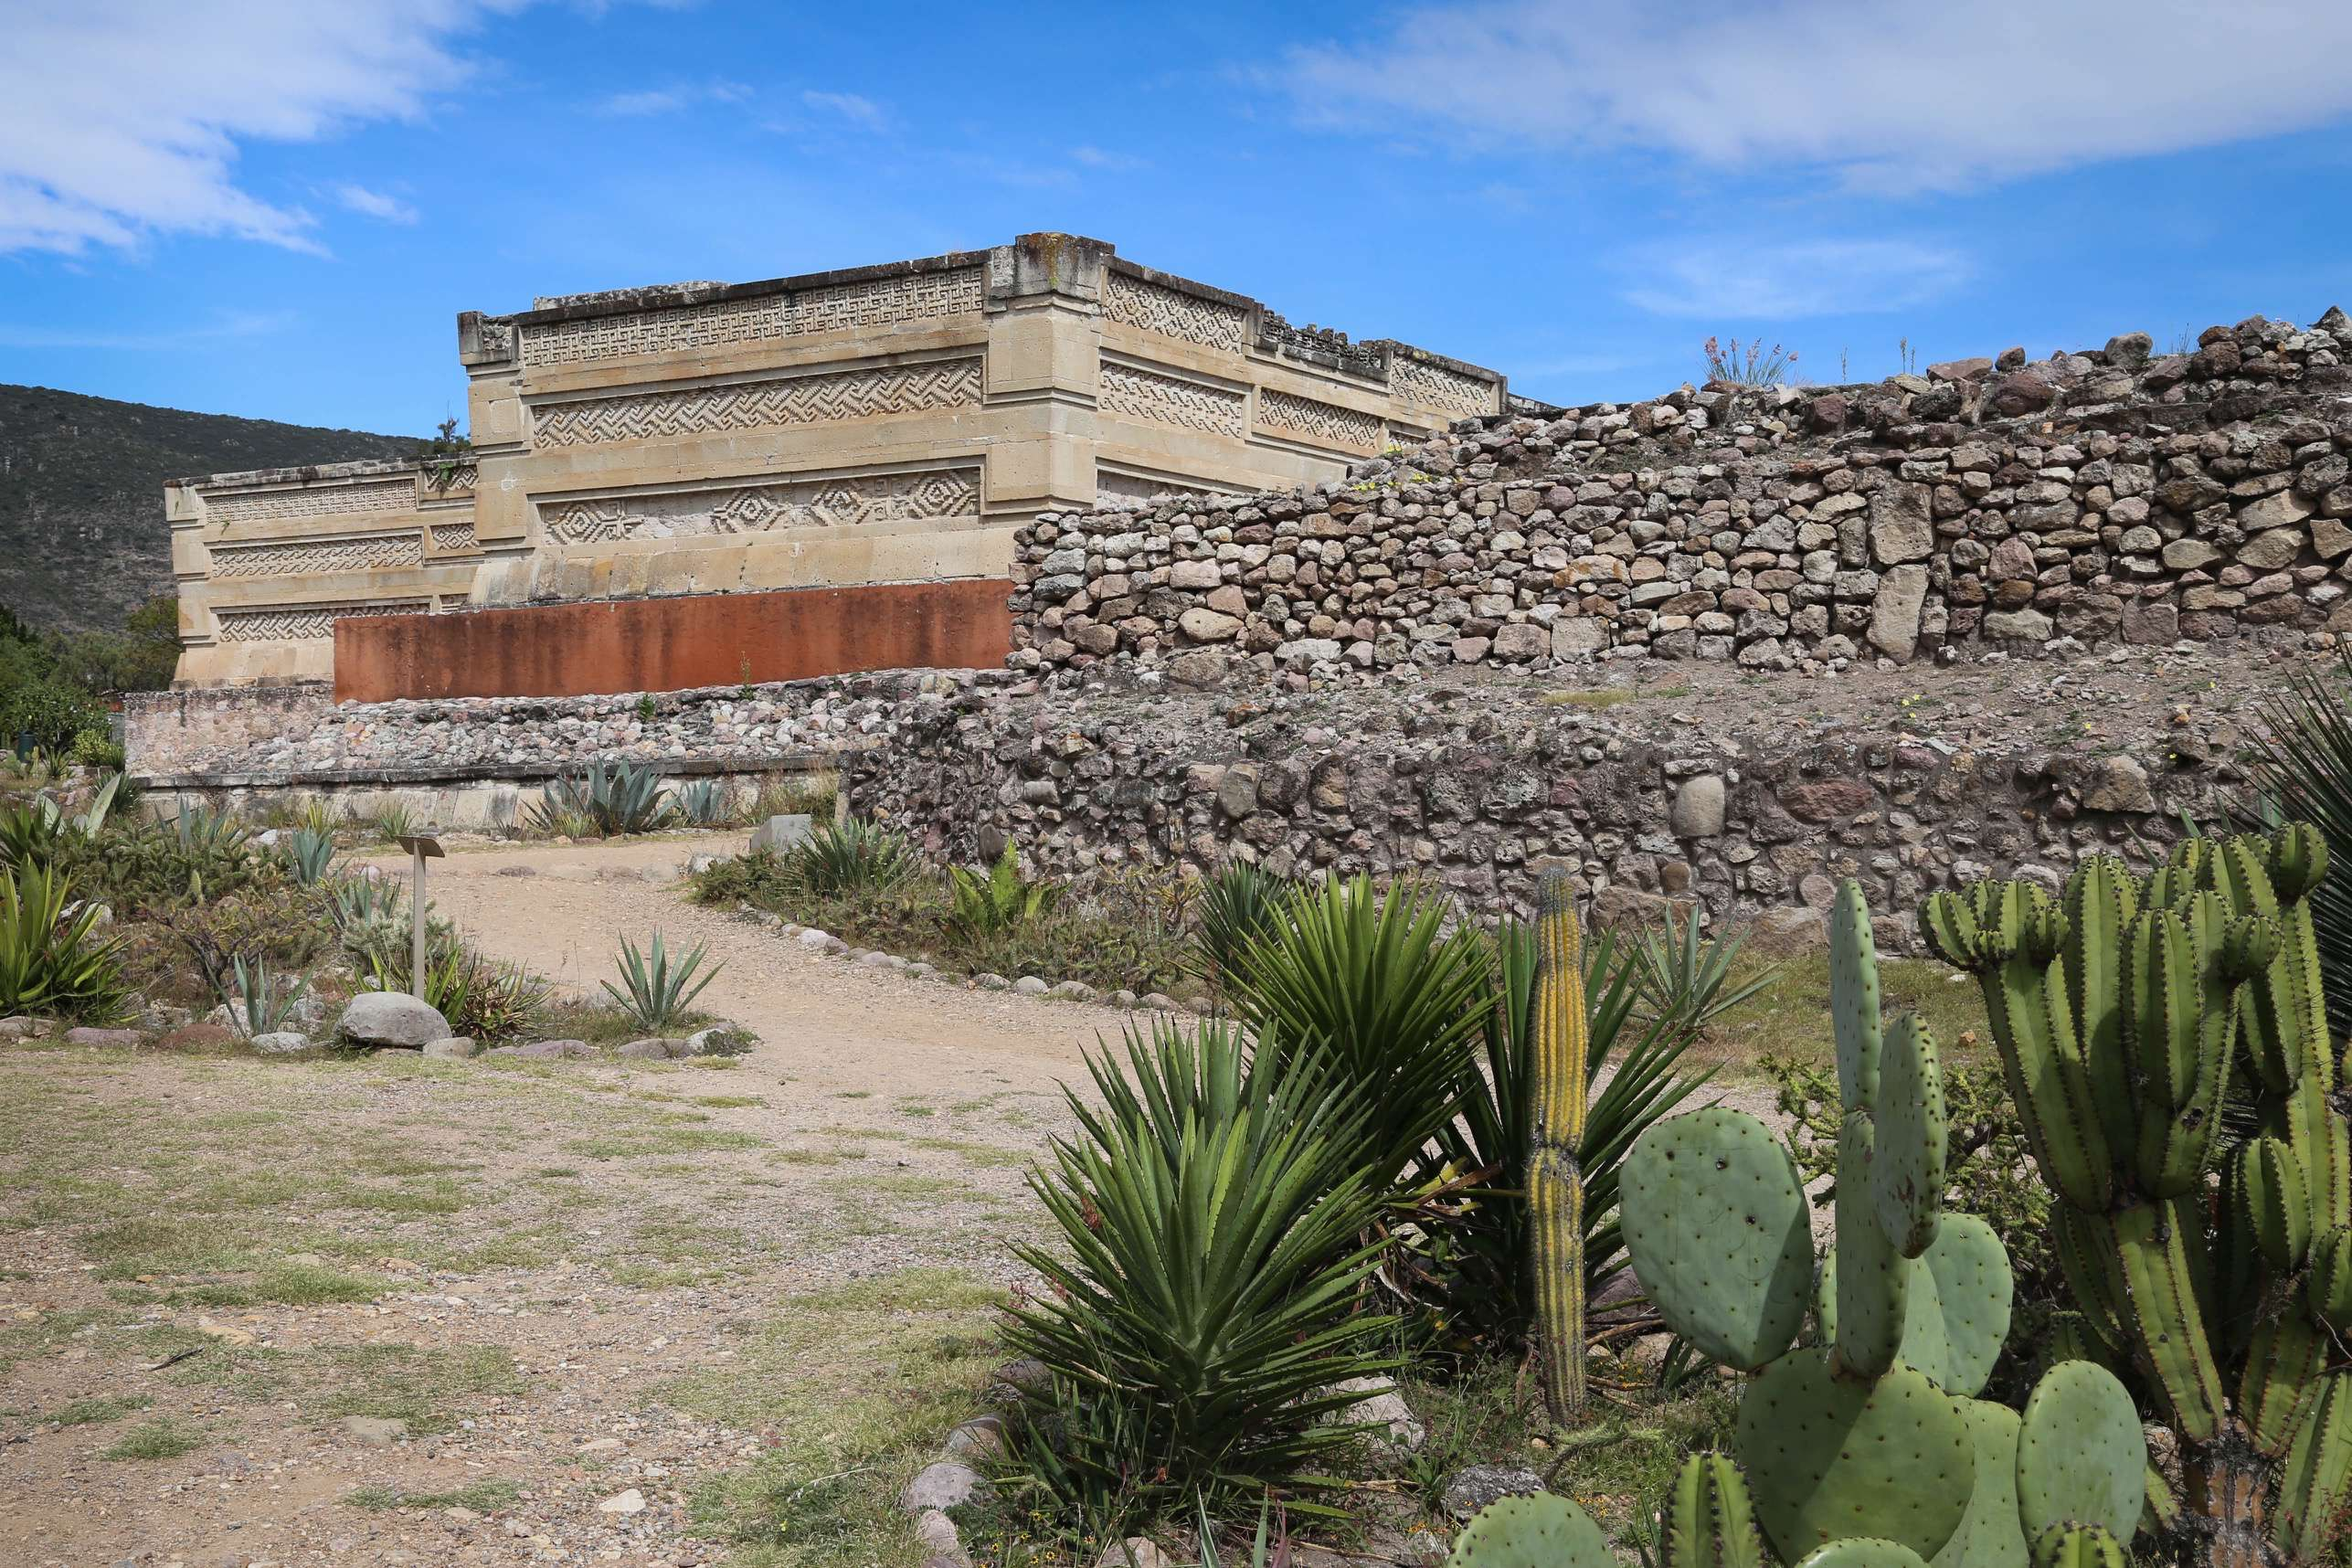 Mitla is the most important religious temple for the Zapotecs of Oaxaca, Mexico. Among its distinctive features are the fretworks of stone carvings that adorn the walls of the buildings in the complex.